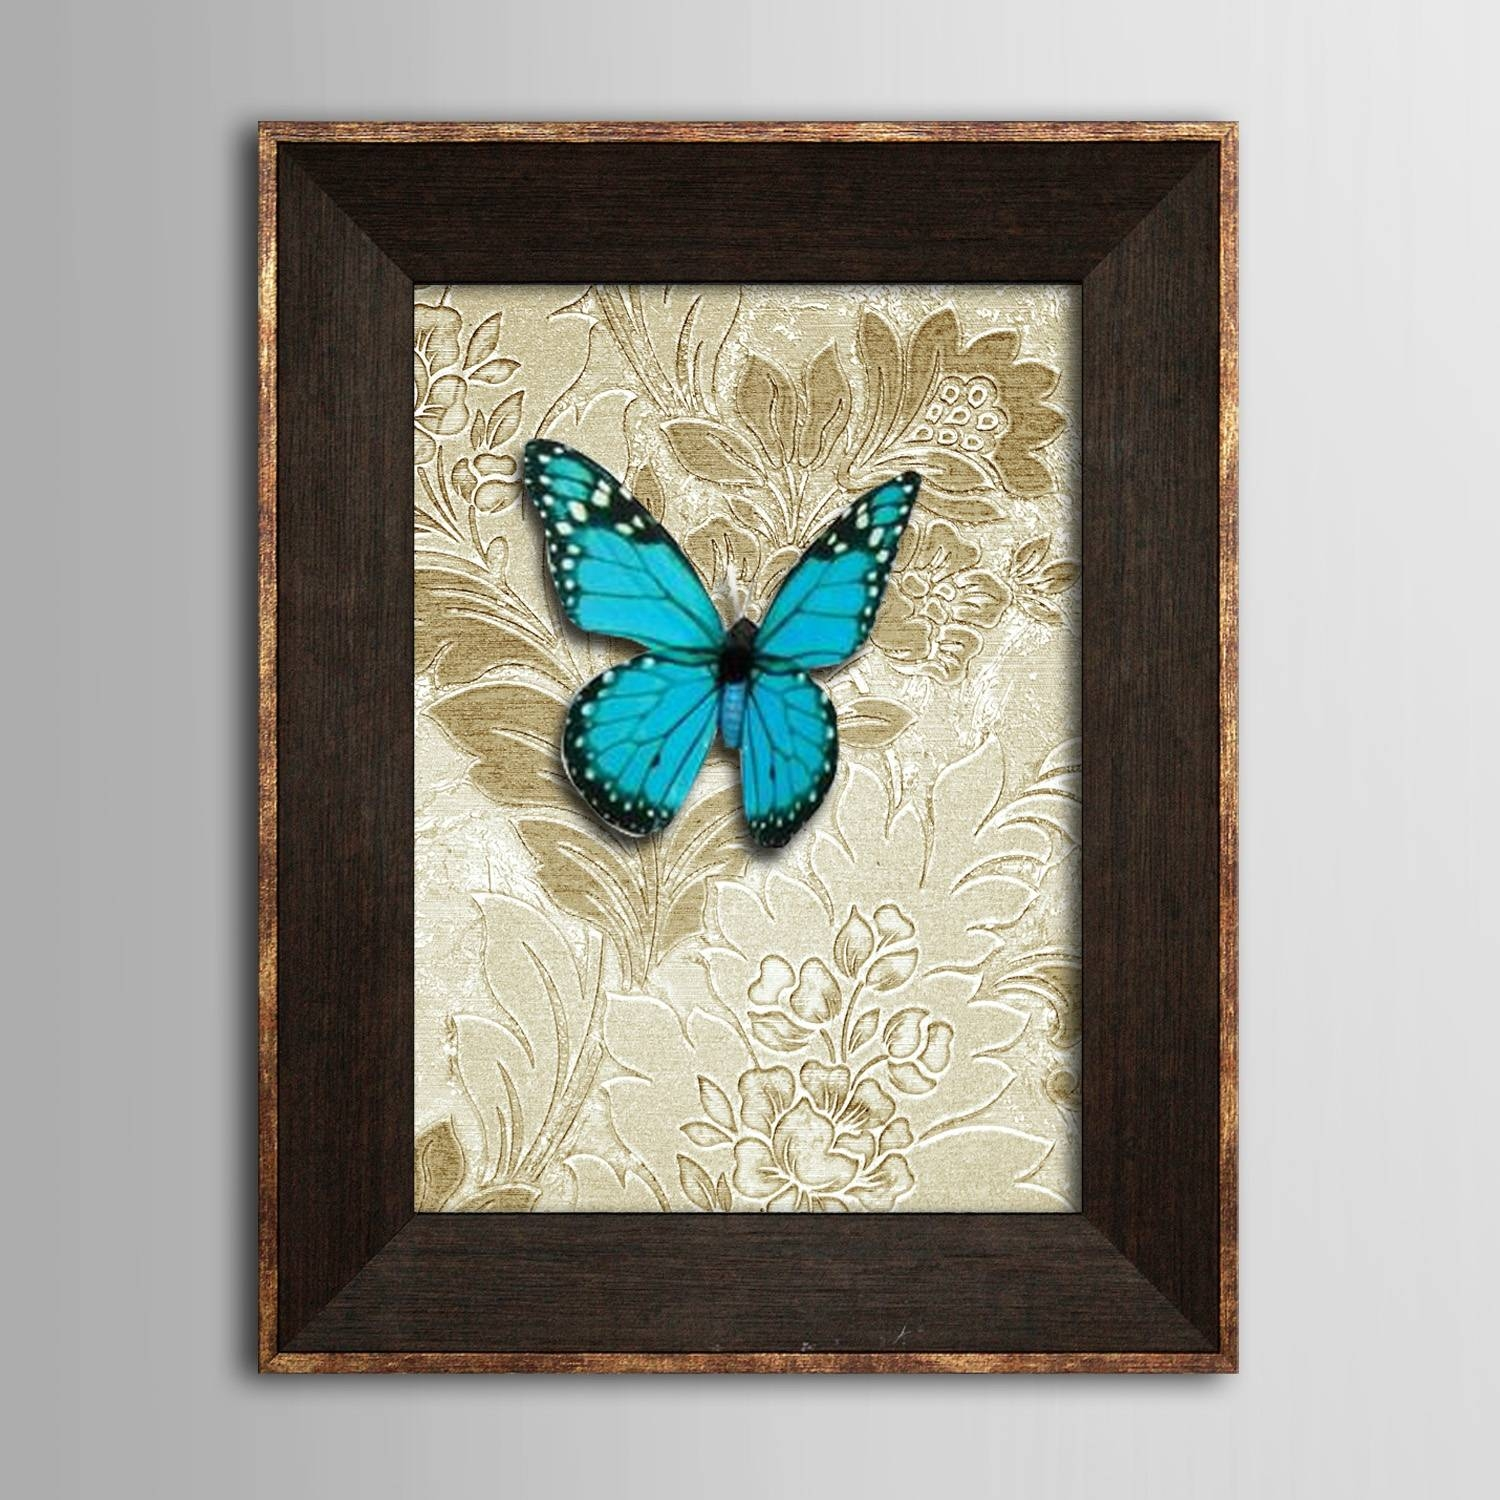 Framed 3D Art Wall Art? Animal 3D Blue Butterflies? Wall Decor With Regard To Most Recent 3D Animal Wall Art (Gallery 12 of 20)